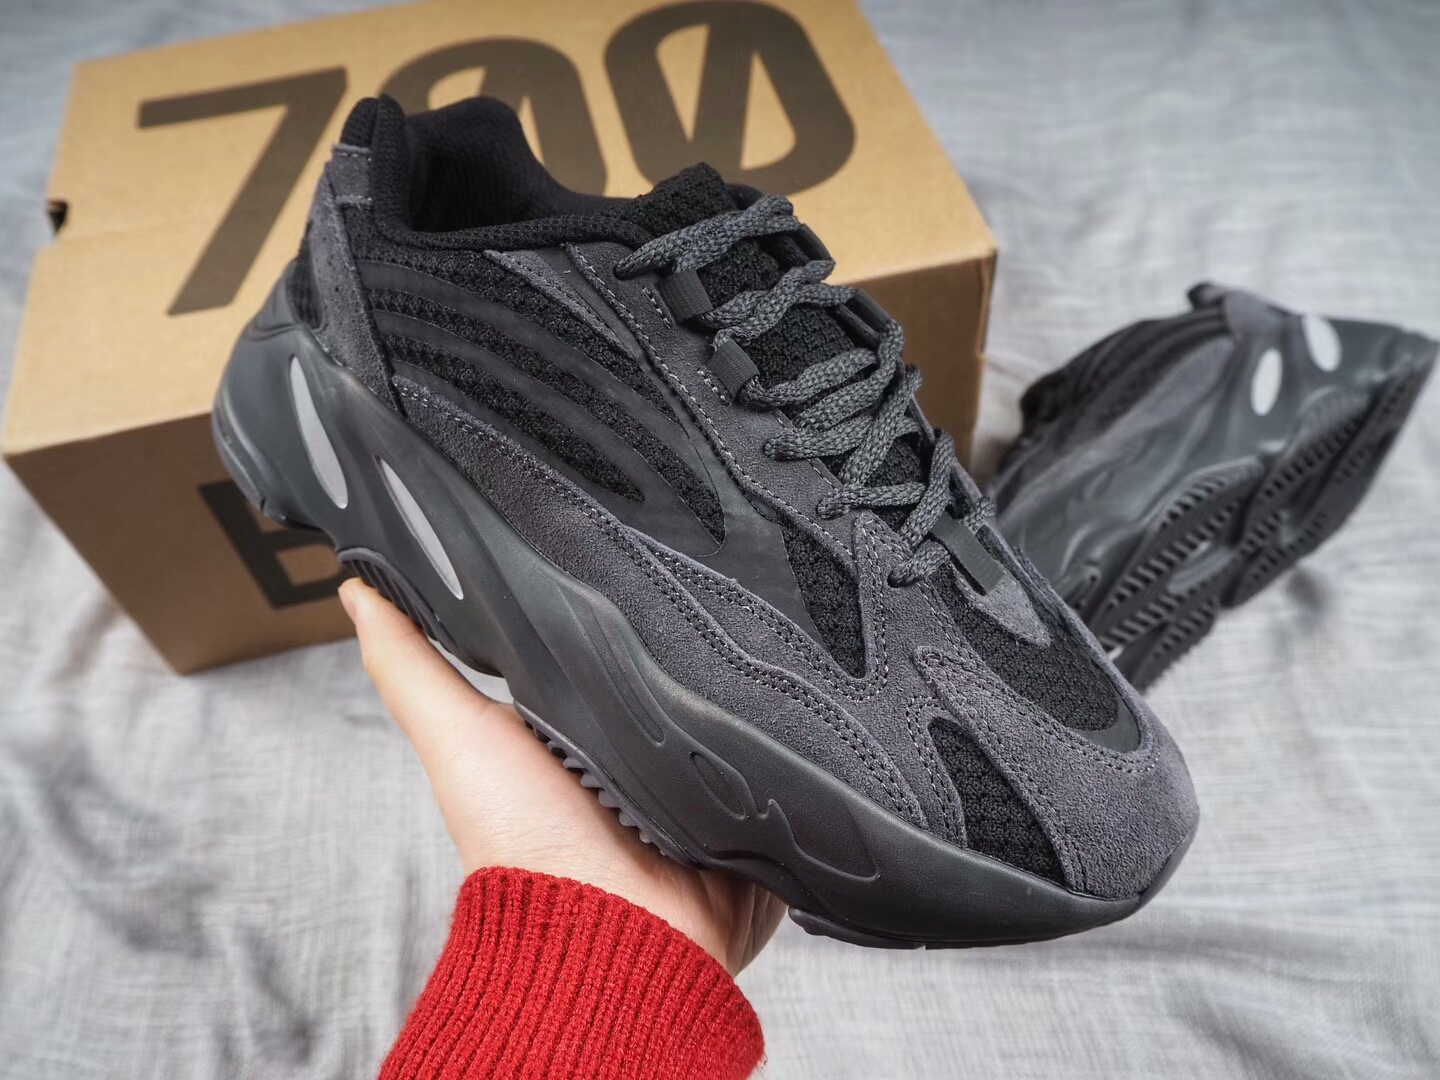 low priced 9000f 27034 Adidas Yeezy Boost 700 V2 3M Fluorescence Sneakers Black